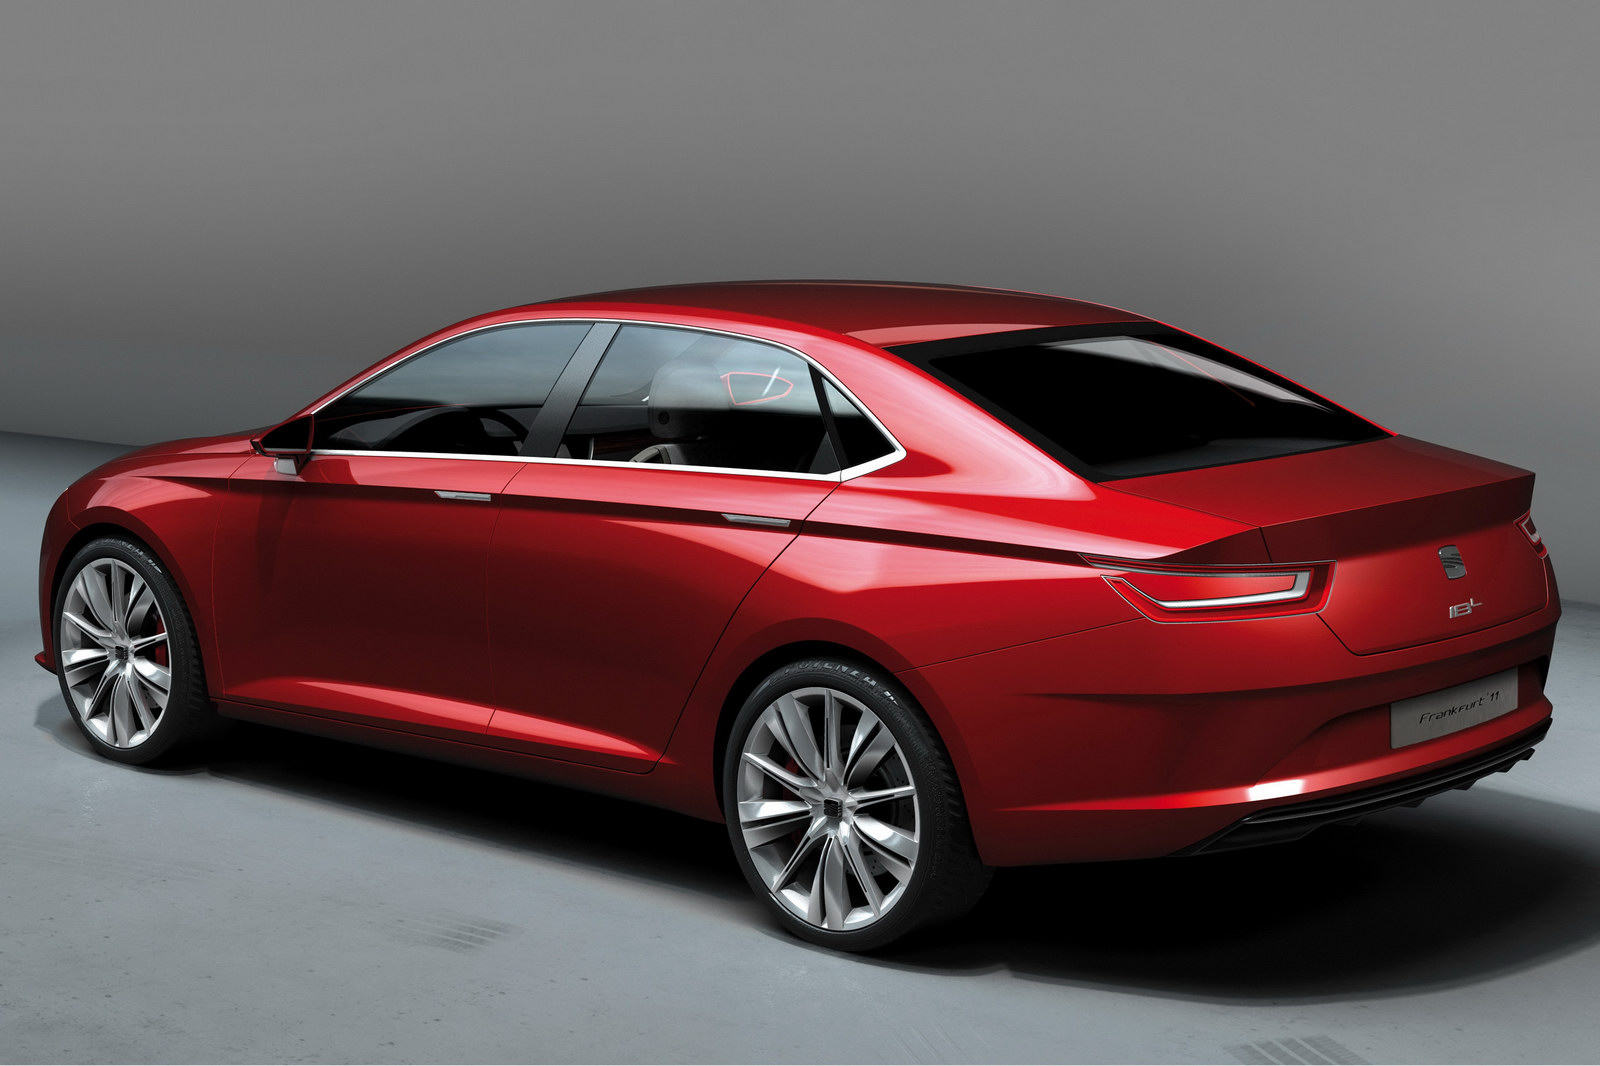 2011 SEAT IBL Sports Concept CSP 3 Seats Sharp Looking IBL Concept Sedan for IAA 2011